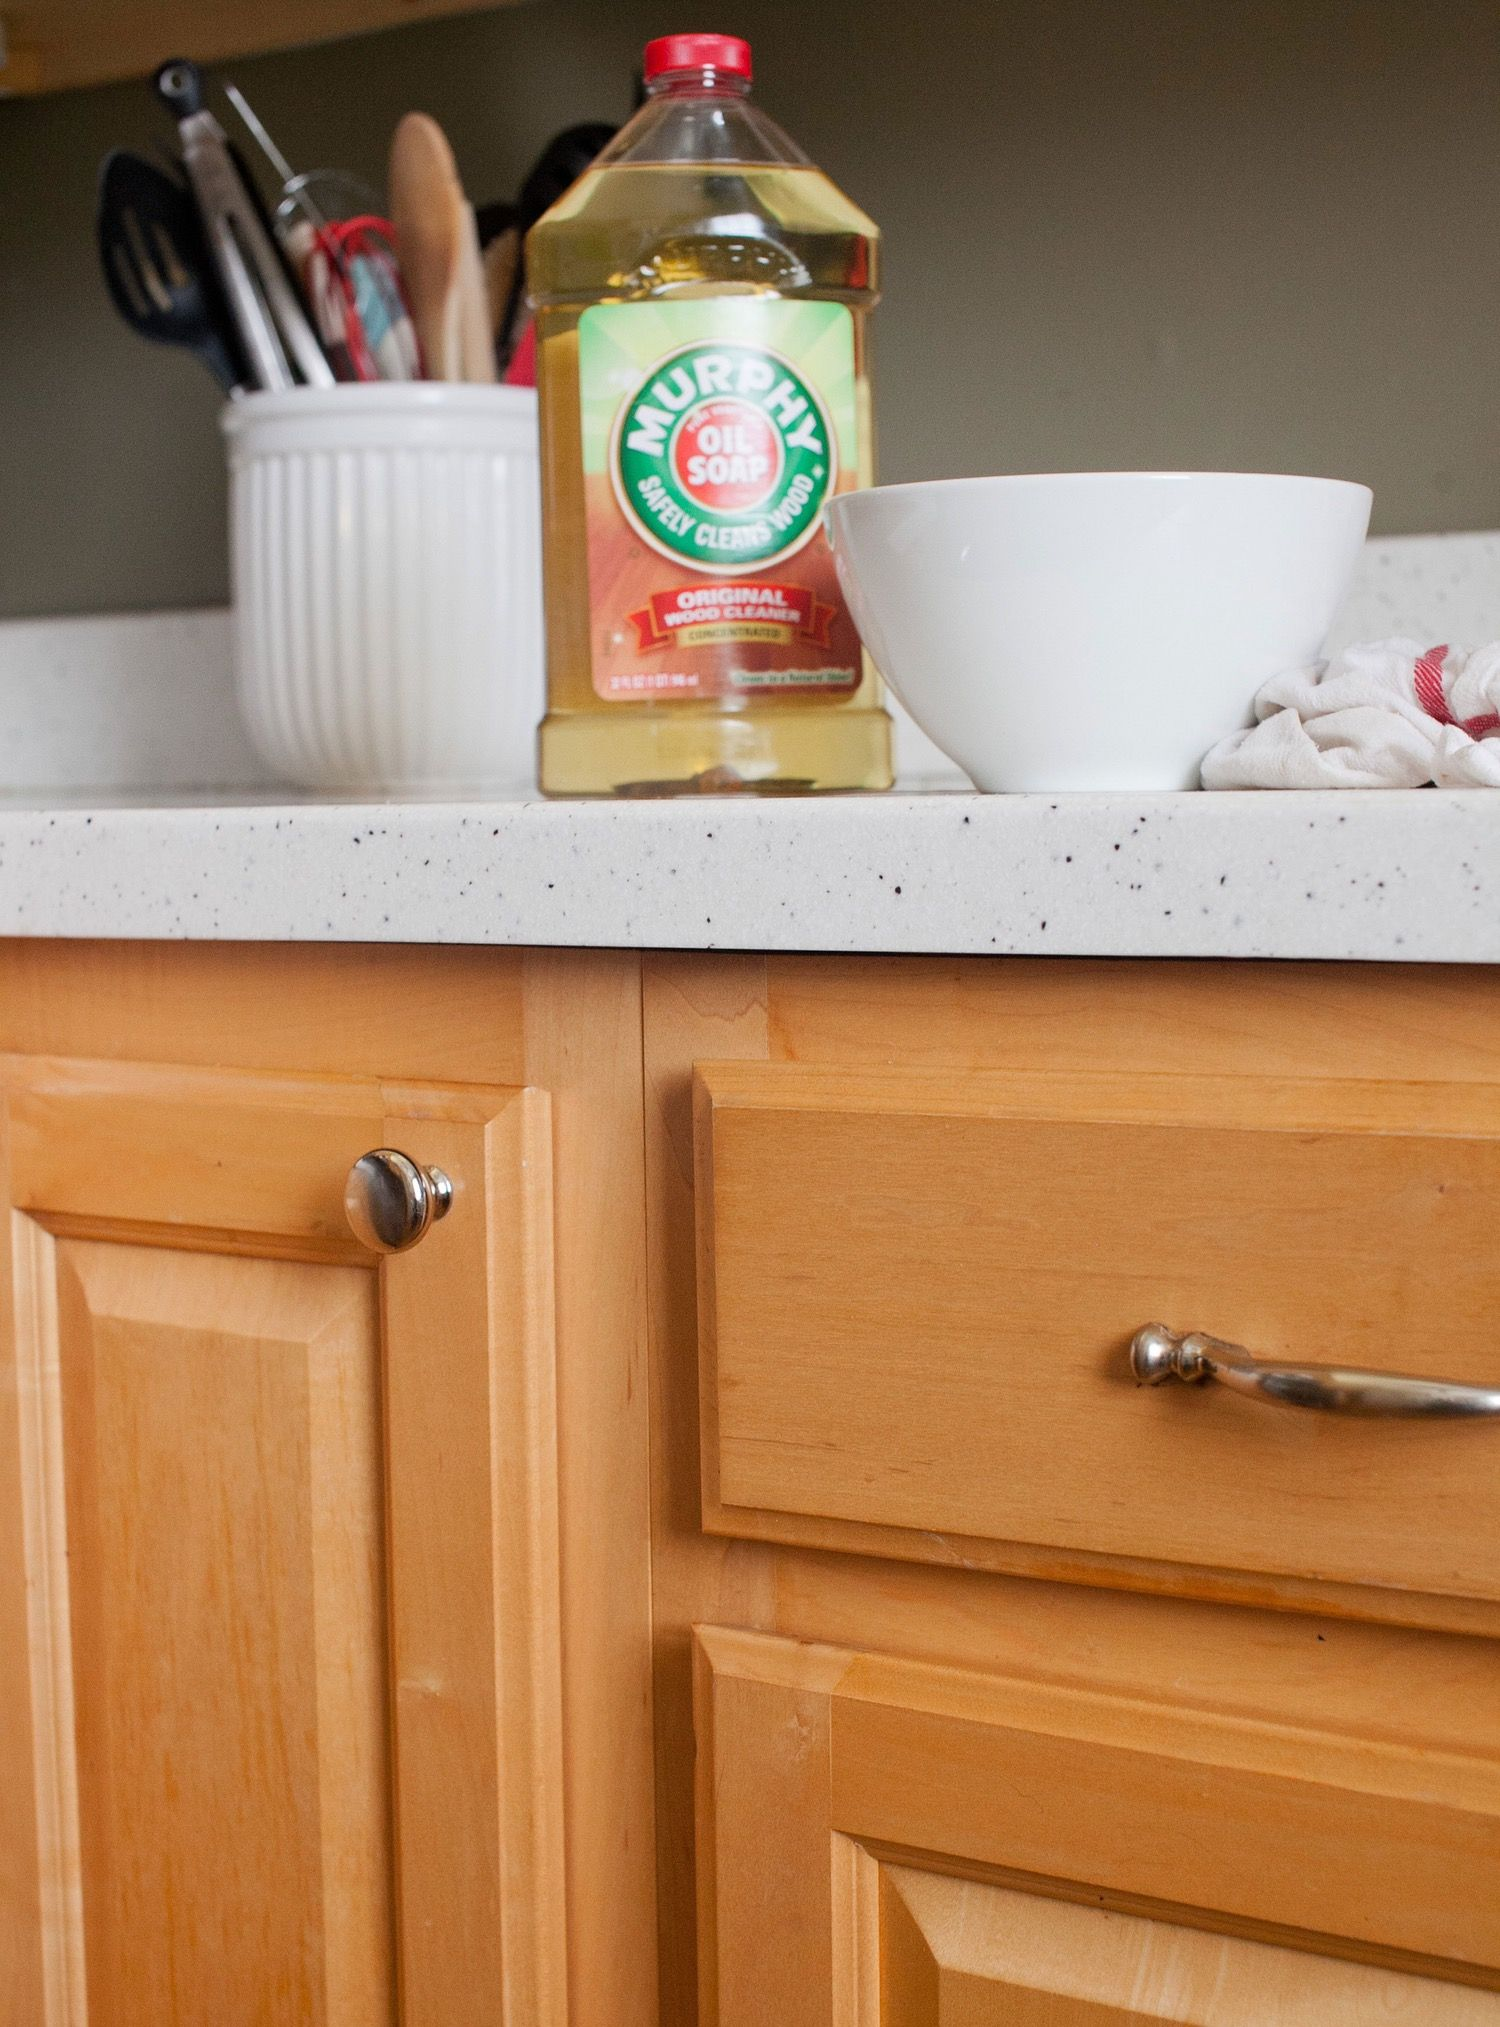 Genial How To Clean Wood Kitchen Cabinets (and The Best Cleaner For The Job) U2014  Cooking Lessons From The Kitchn